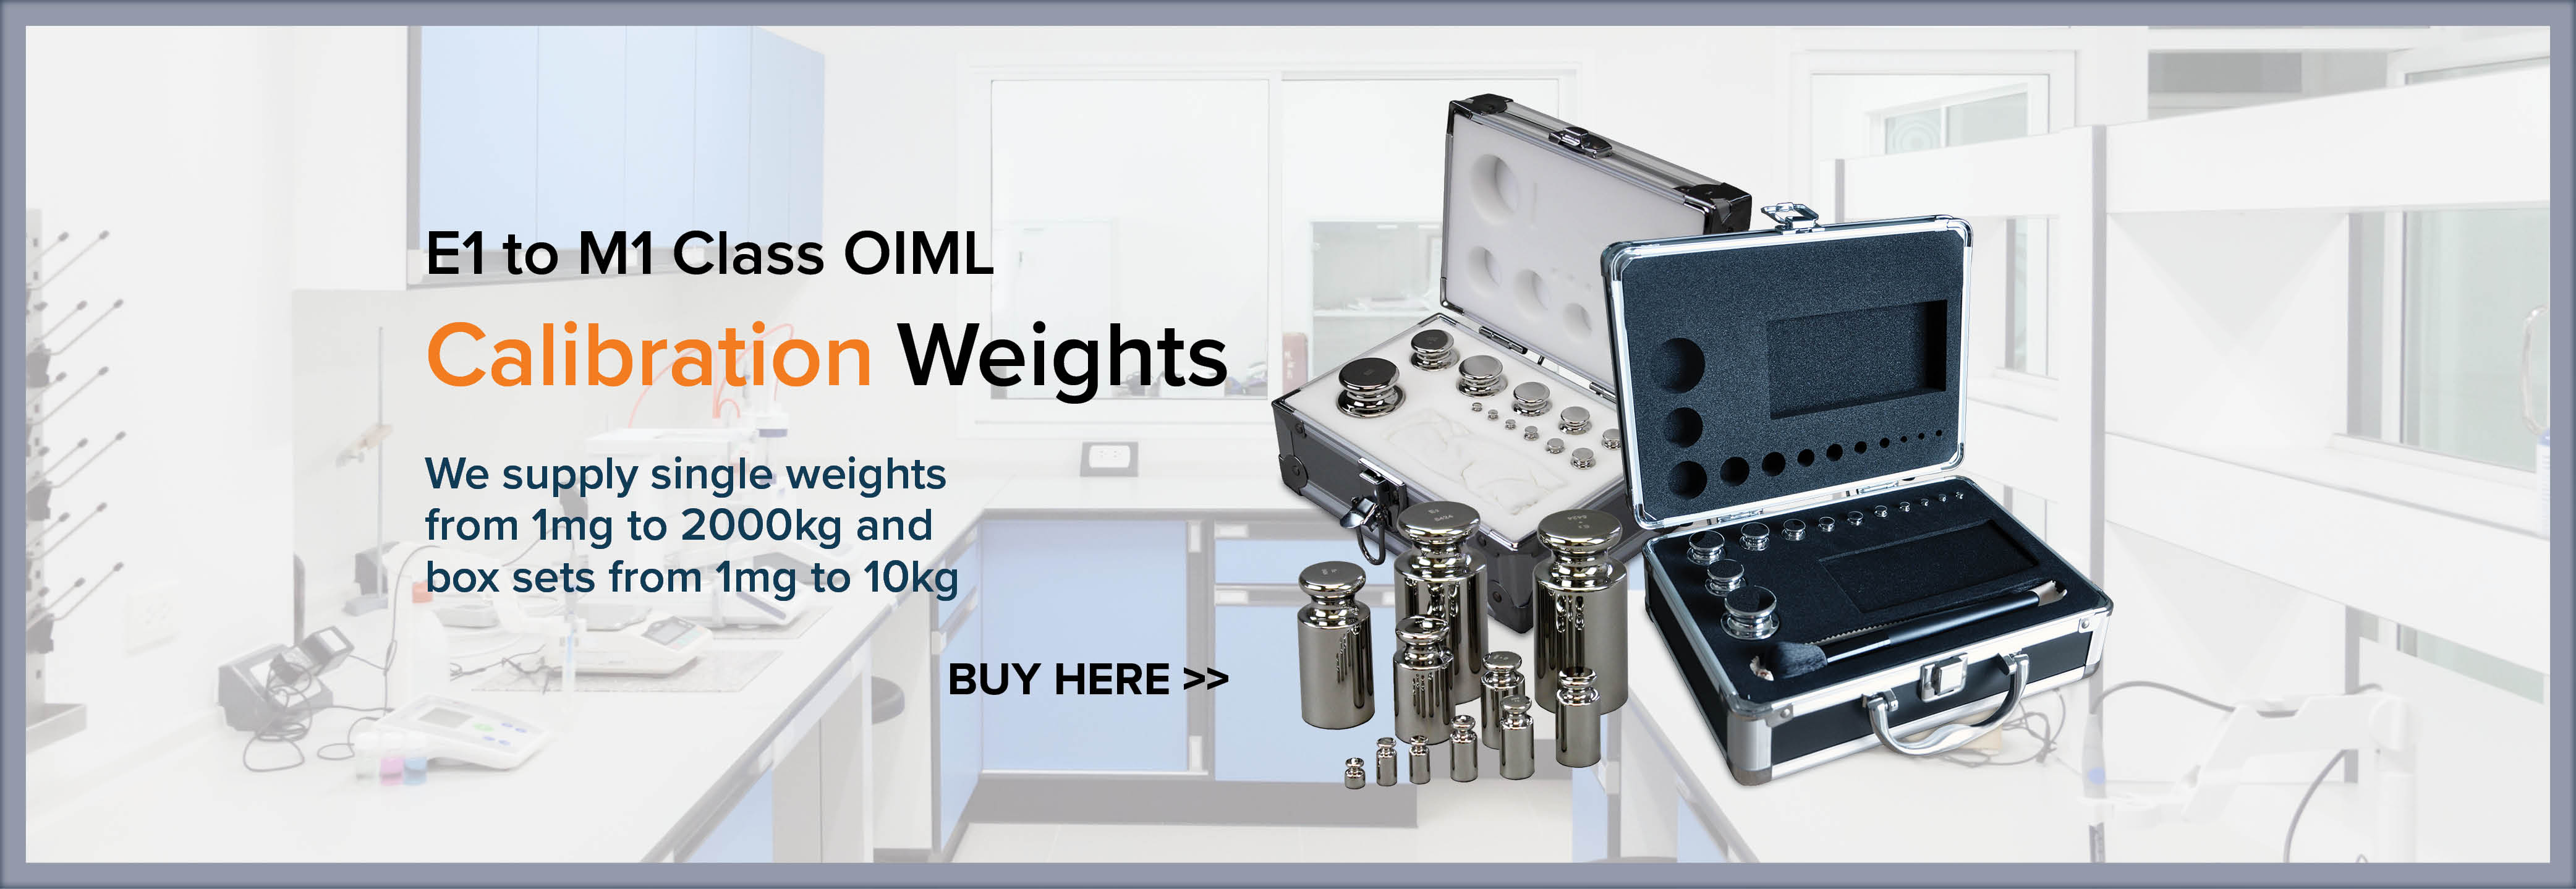 E1 to M1 Class OIML Calibration Weights - Buy Here